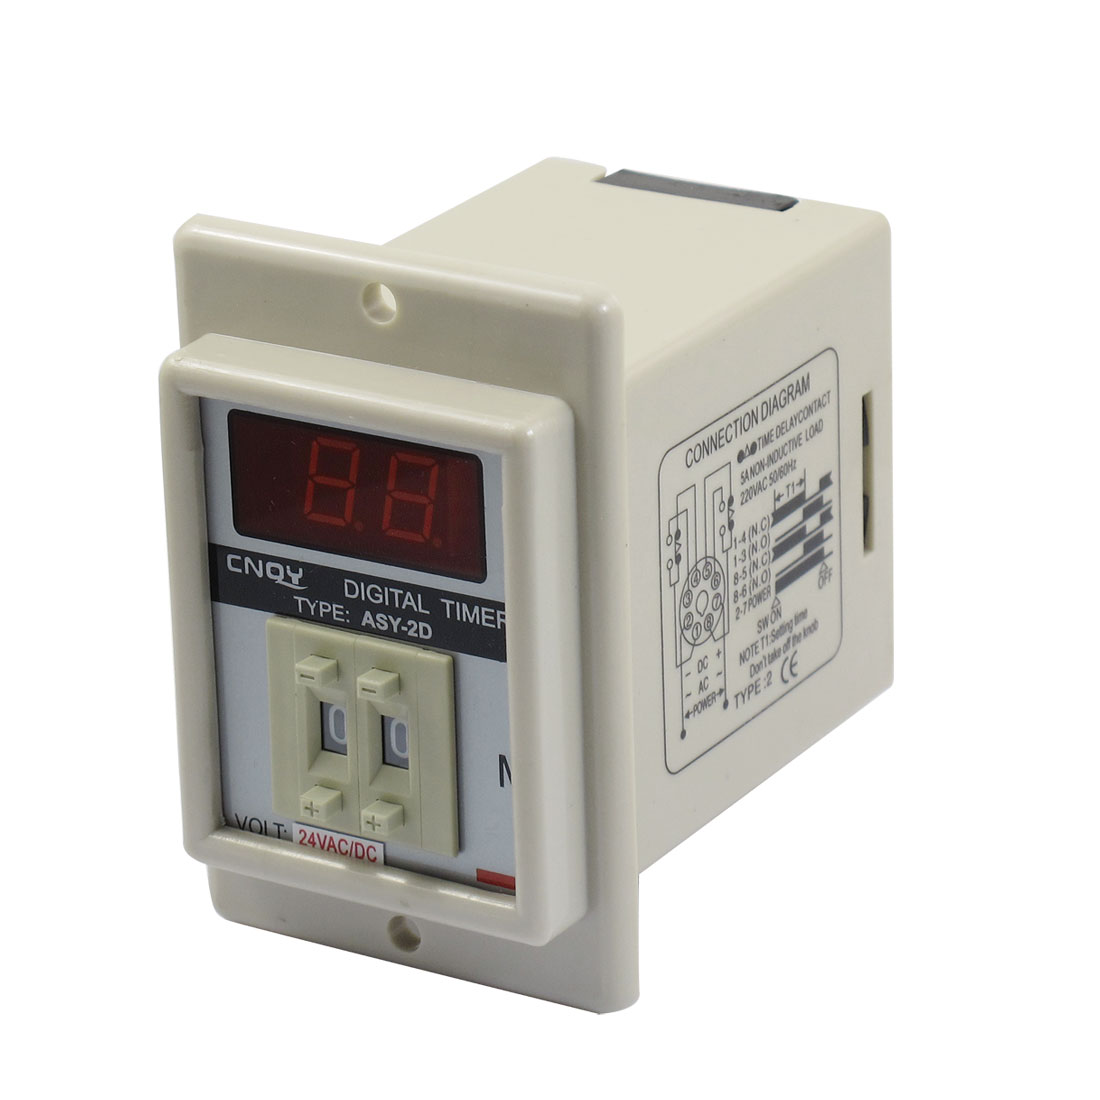 ASY-2D AC/DC 24V 99 Minute Digital Timer Programmable Time Delay Relay White